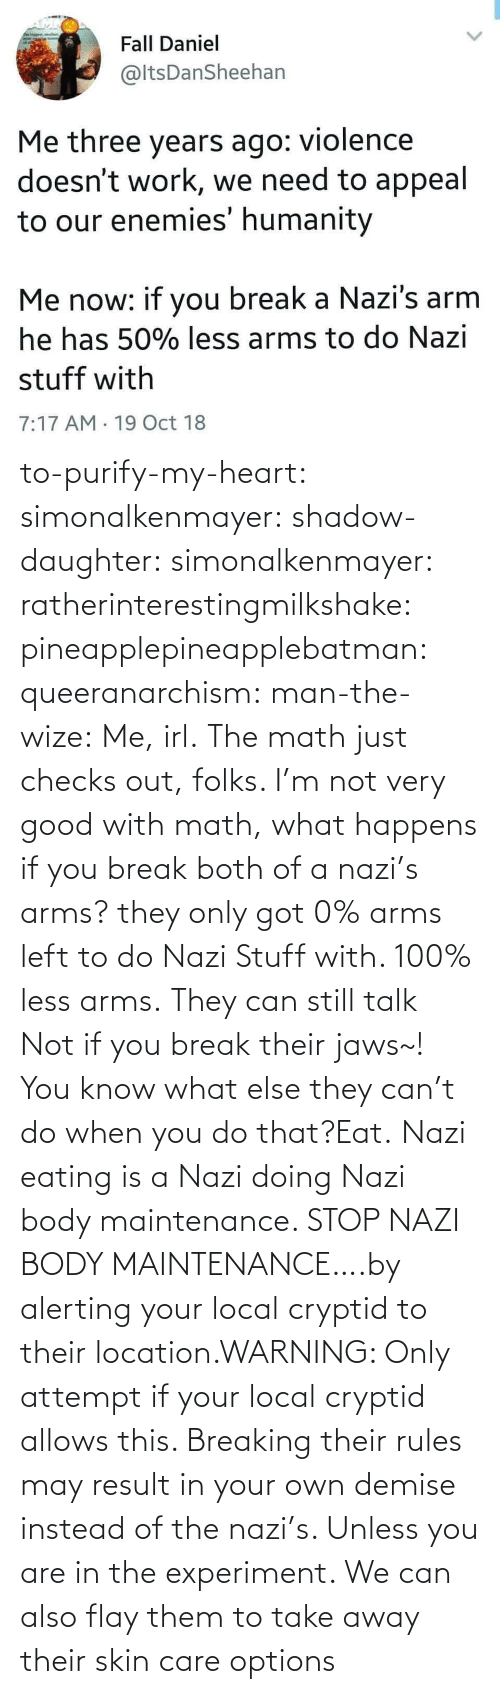 Tumblr, Blog, and Break: to-purify-my-heart:  simonalkenmayer:  shadow-daughter: simonalkenmayer:  ratherinterestingmilkshake:  pineapplepineapplebatman:  queeranarchism:  man-the-wize: Me, irl. The math just checks out, folks.     I'm not very good with math, what happens if you break both of a nazi's arms?  they only got 0% arms left to do Nazi Stuff with. 100% less arms.  They can still talk  Not if you break their jaws~!  You know what else they can't do when you do that?Eat.   Nazi eating is a Nazi doing Nazi body maintenance. STOP NAZI BODY MAINTENANCE….by alerting your local cryptid to their location.WARNING: Only attempt if your local cryptid allows this. Breaking their rules may result in your own demise instead of the nazi's. Unless you are in the experiment.    We can also flay them to take away their skin care options